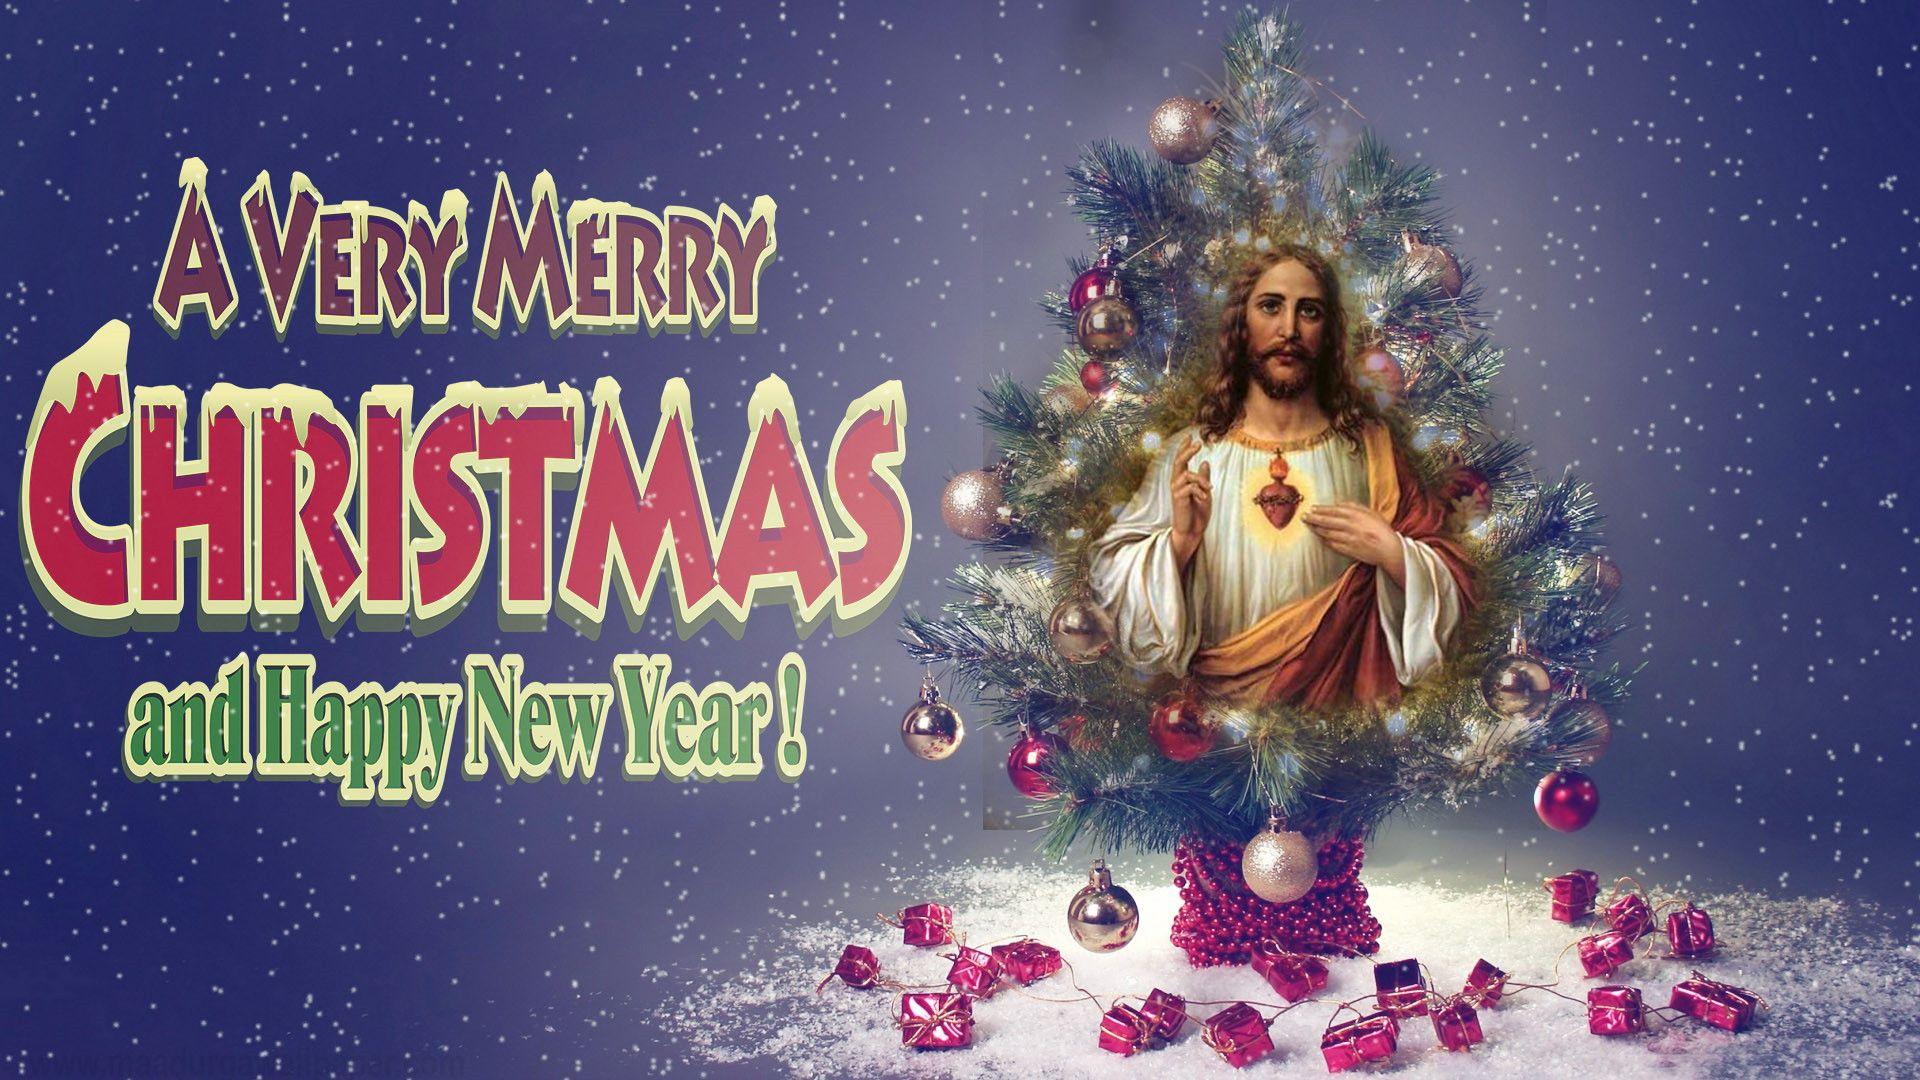 baby jesus christmas wallpaper beautiful photo amp hd